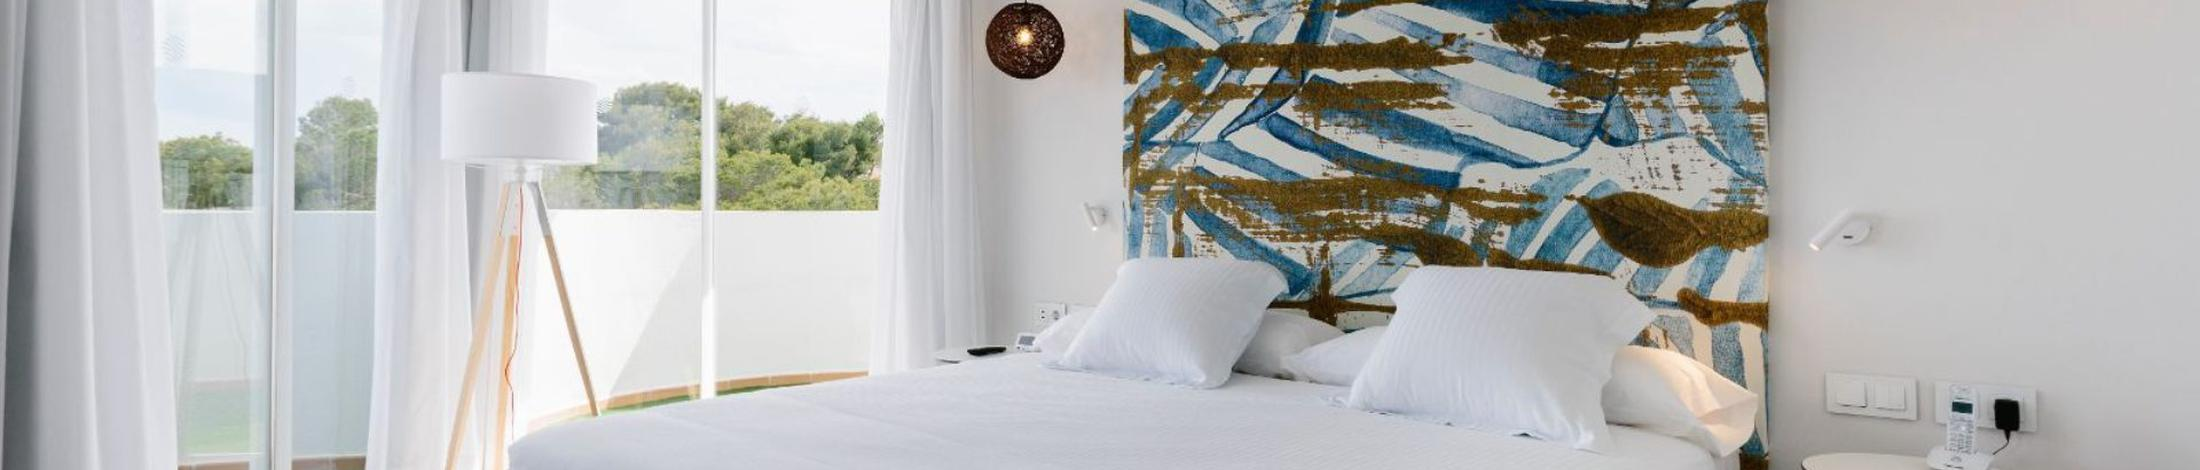 Suite sea view aluasoul mallorca resort (adults only) hotel cala d'or, mallorca